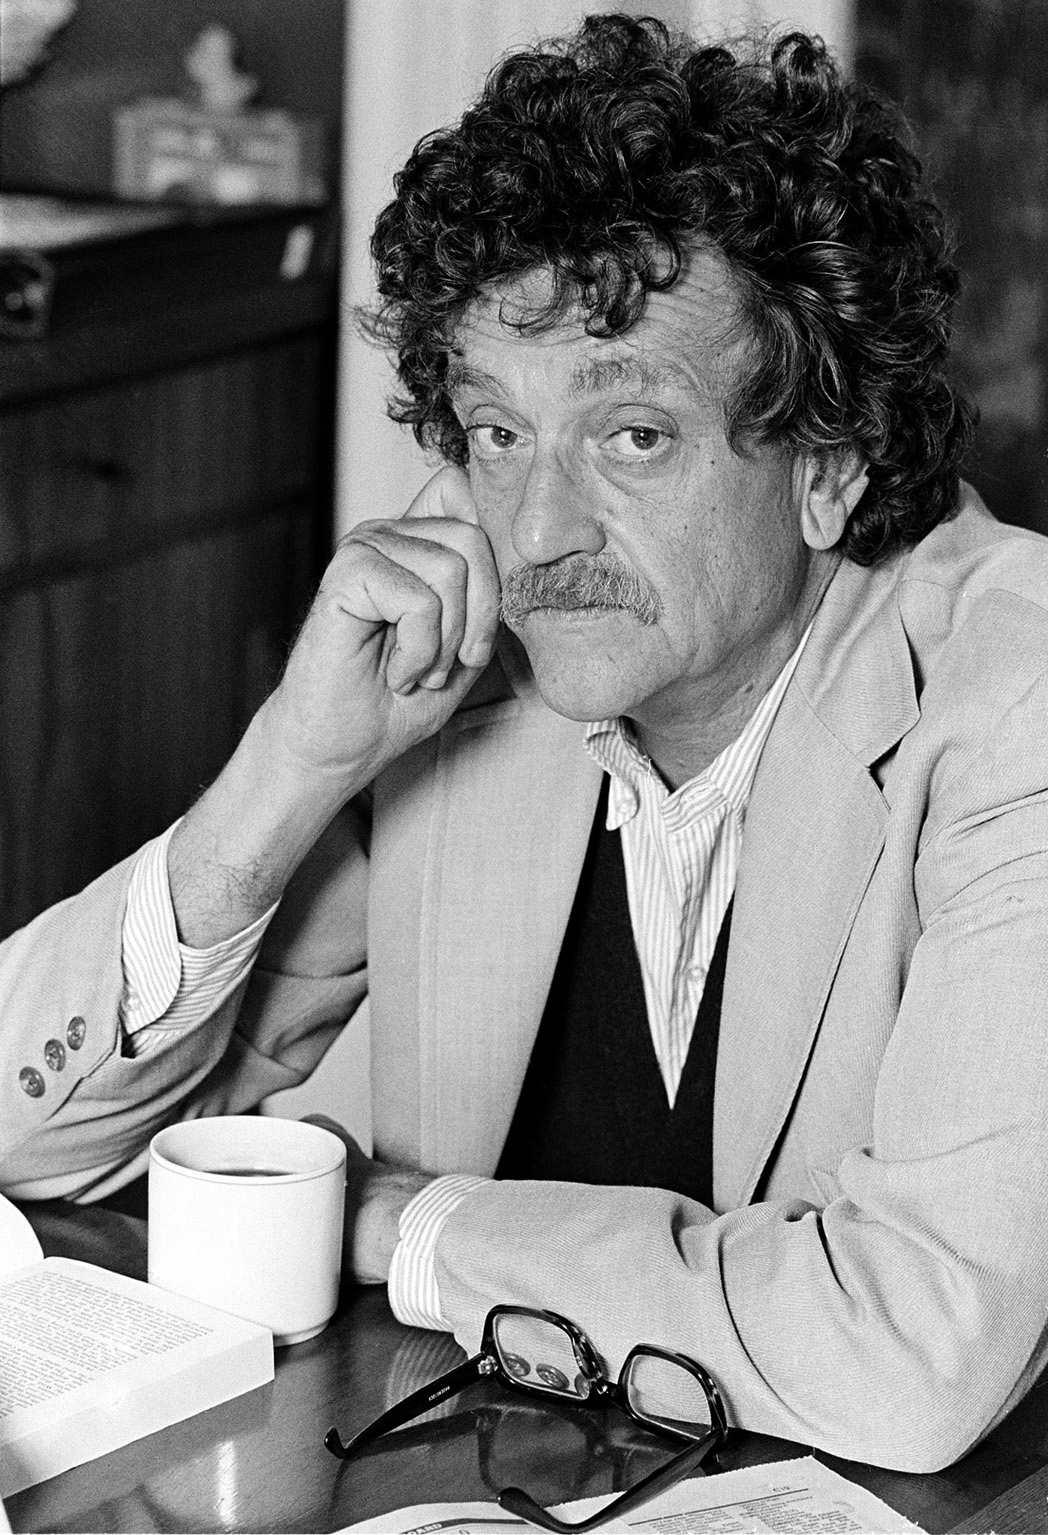 style analysis of kurt vonnegut on Kurt vonnegut style analysis harrison bergeron 2br02b commercial and critical success biography overall style analysis kurt vonnegut was born in indianapolis, indiana on november 11, 1922.